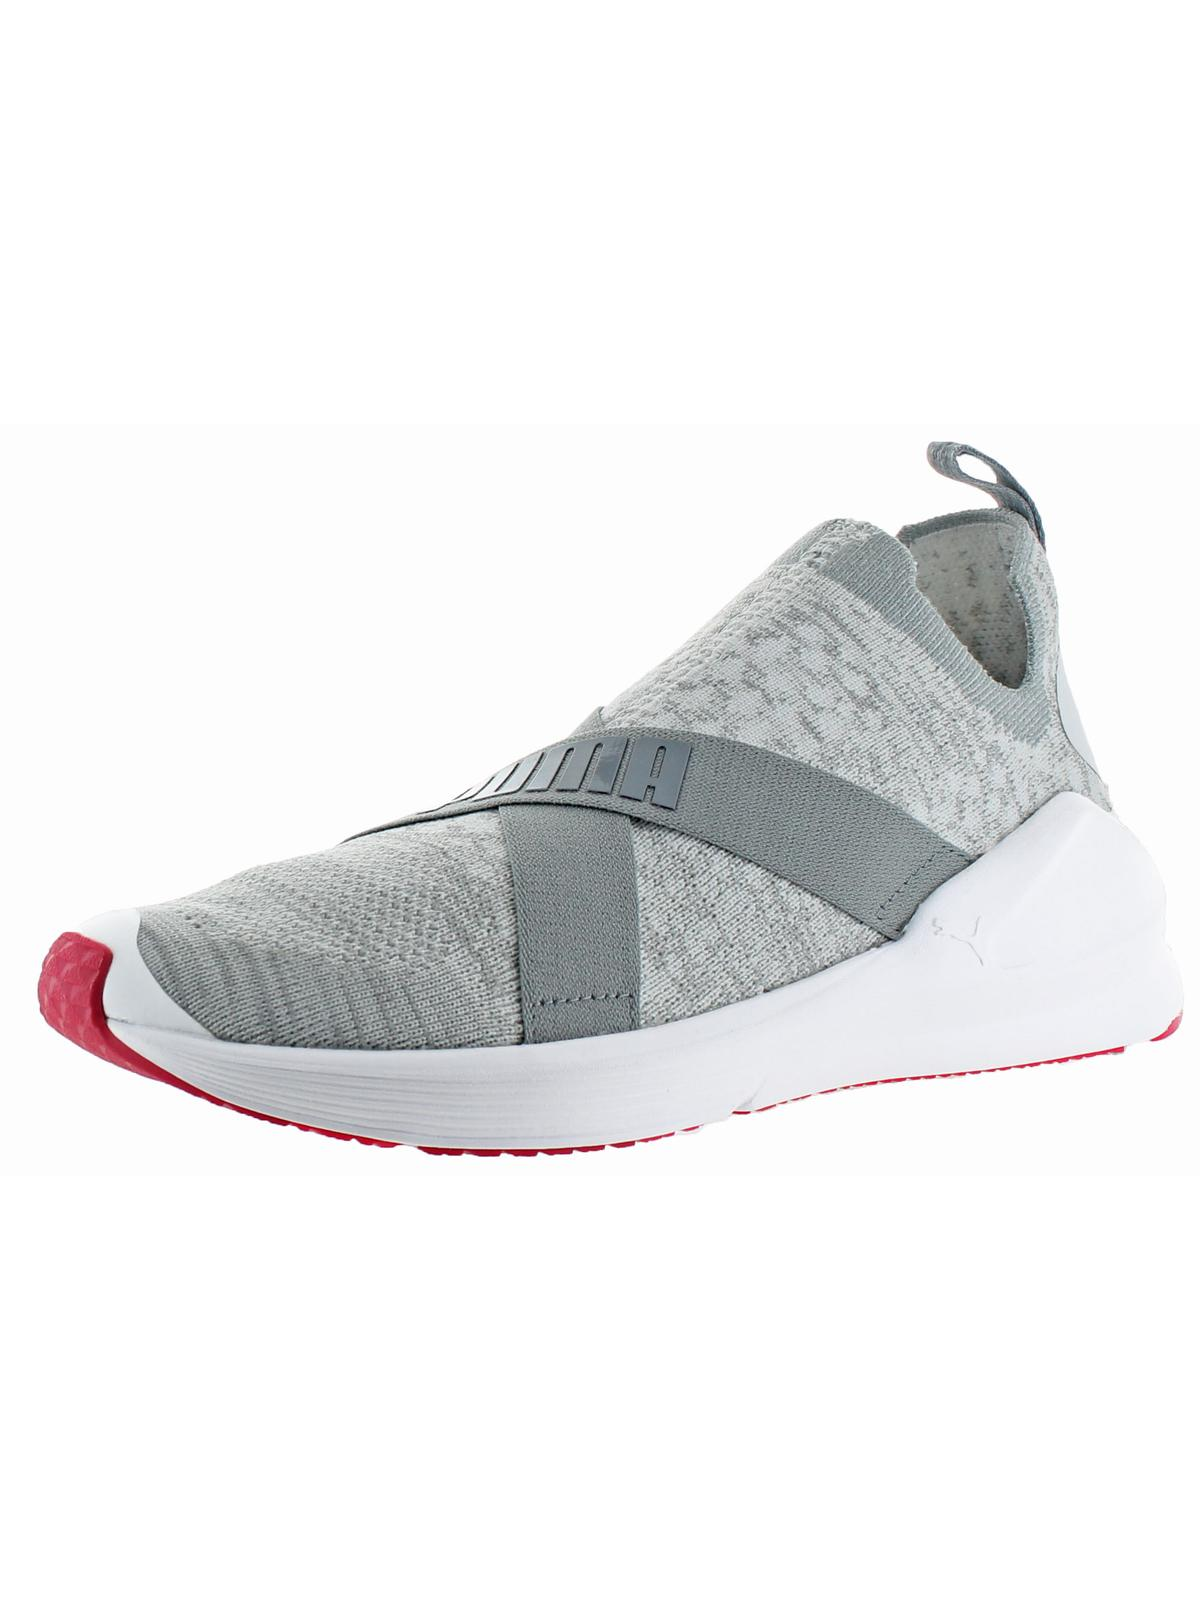 puma womens fierce evoknit round toe casual fashion sneakers